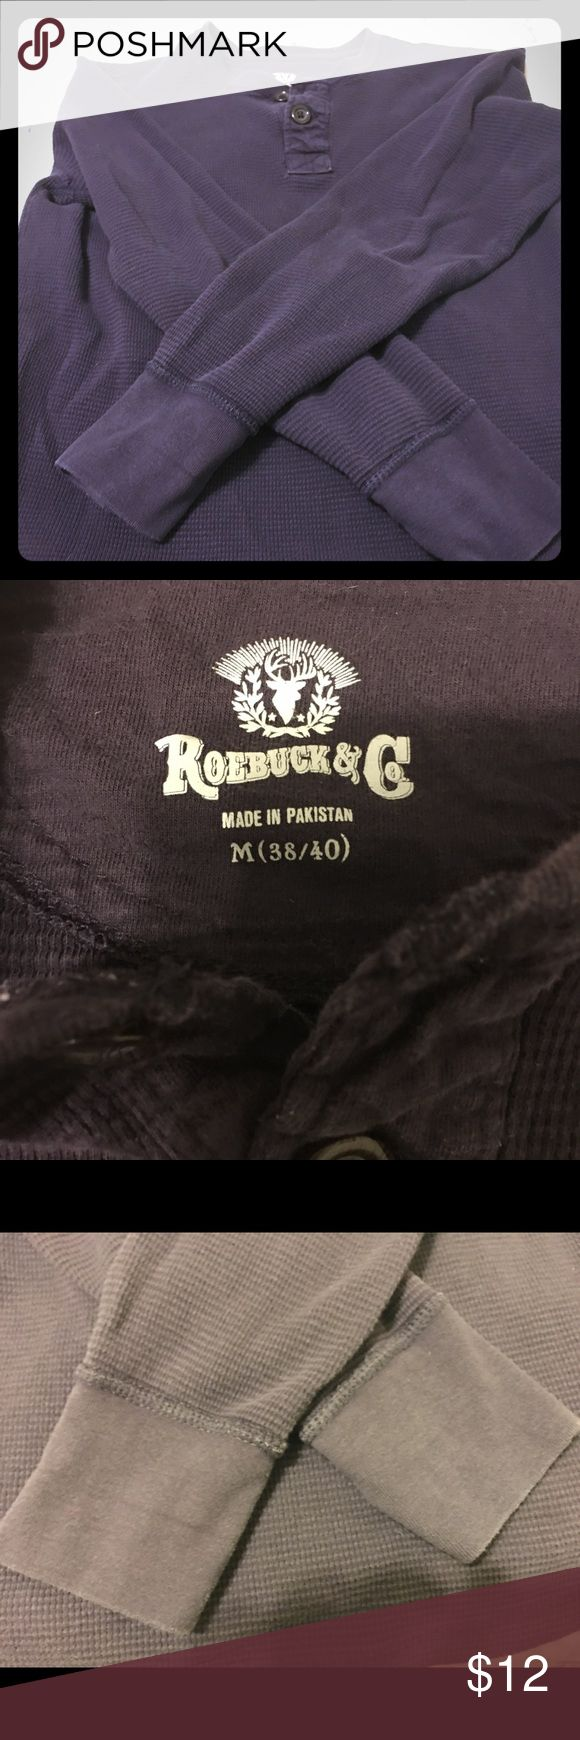 Unisex deep purple henley with 2 buttons Unisex deep purple henley with 2 buttons! Barely worn, no wear and tear. Sears Roebuck Tops Button Down Shirts